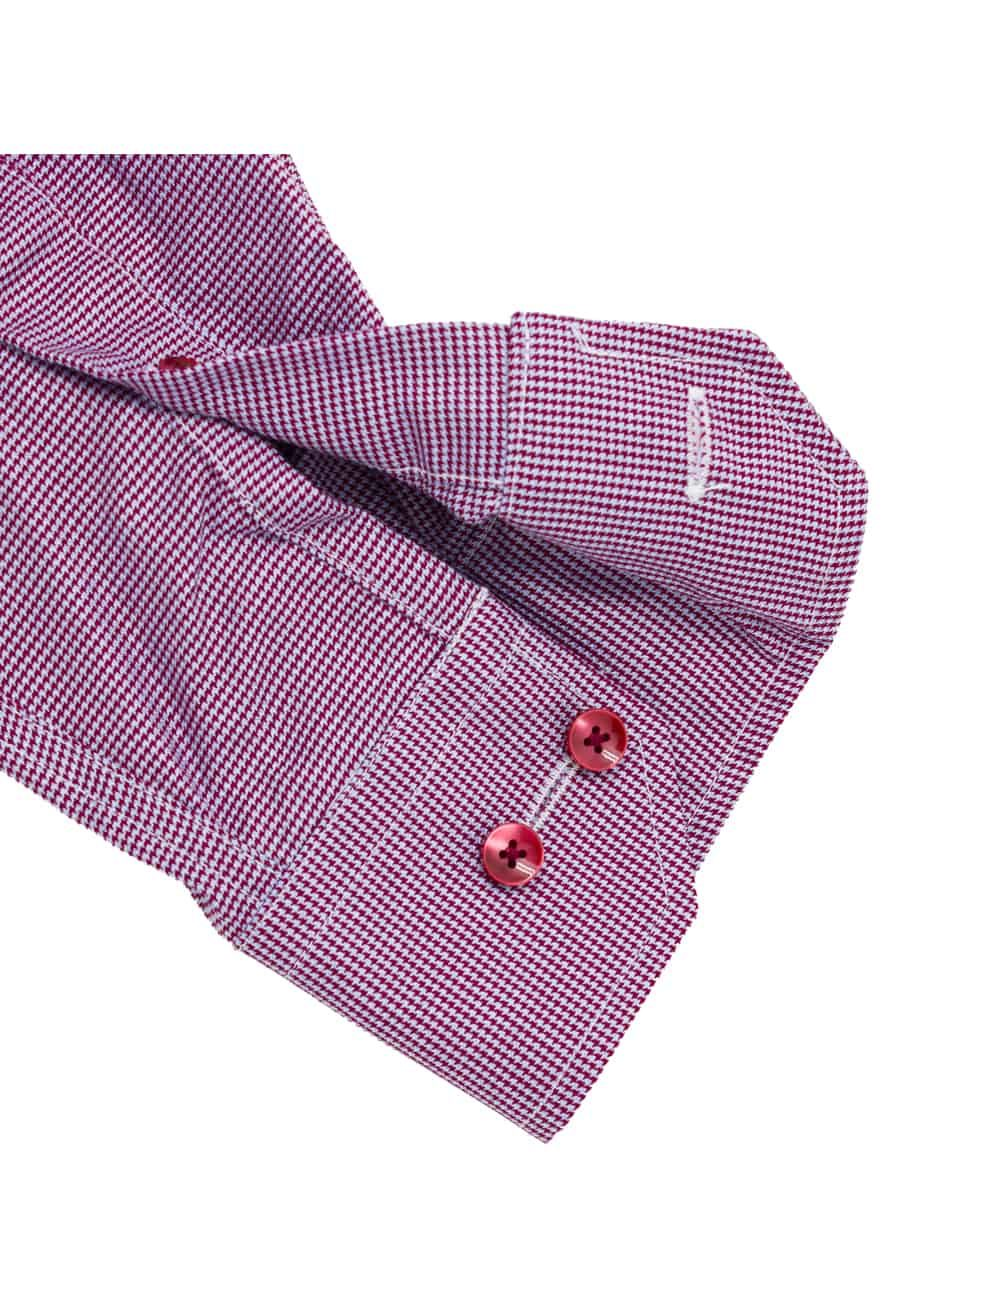 Tailored Fit Red Houndstooth Wrinkle Free 100% Cotton Long Sleeve Shirt TF2A5.7